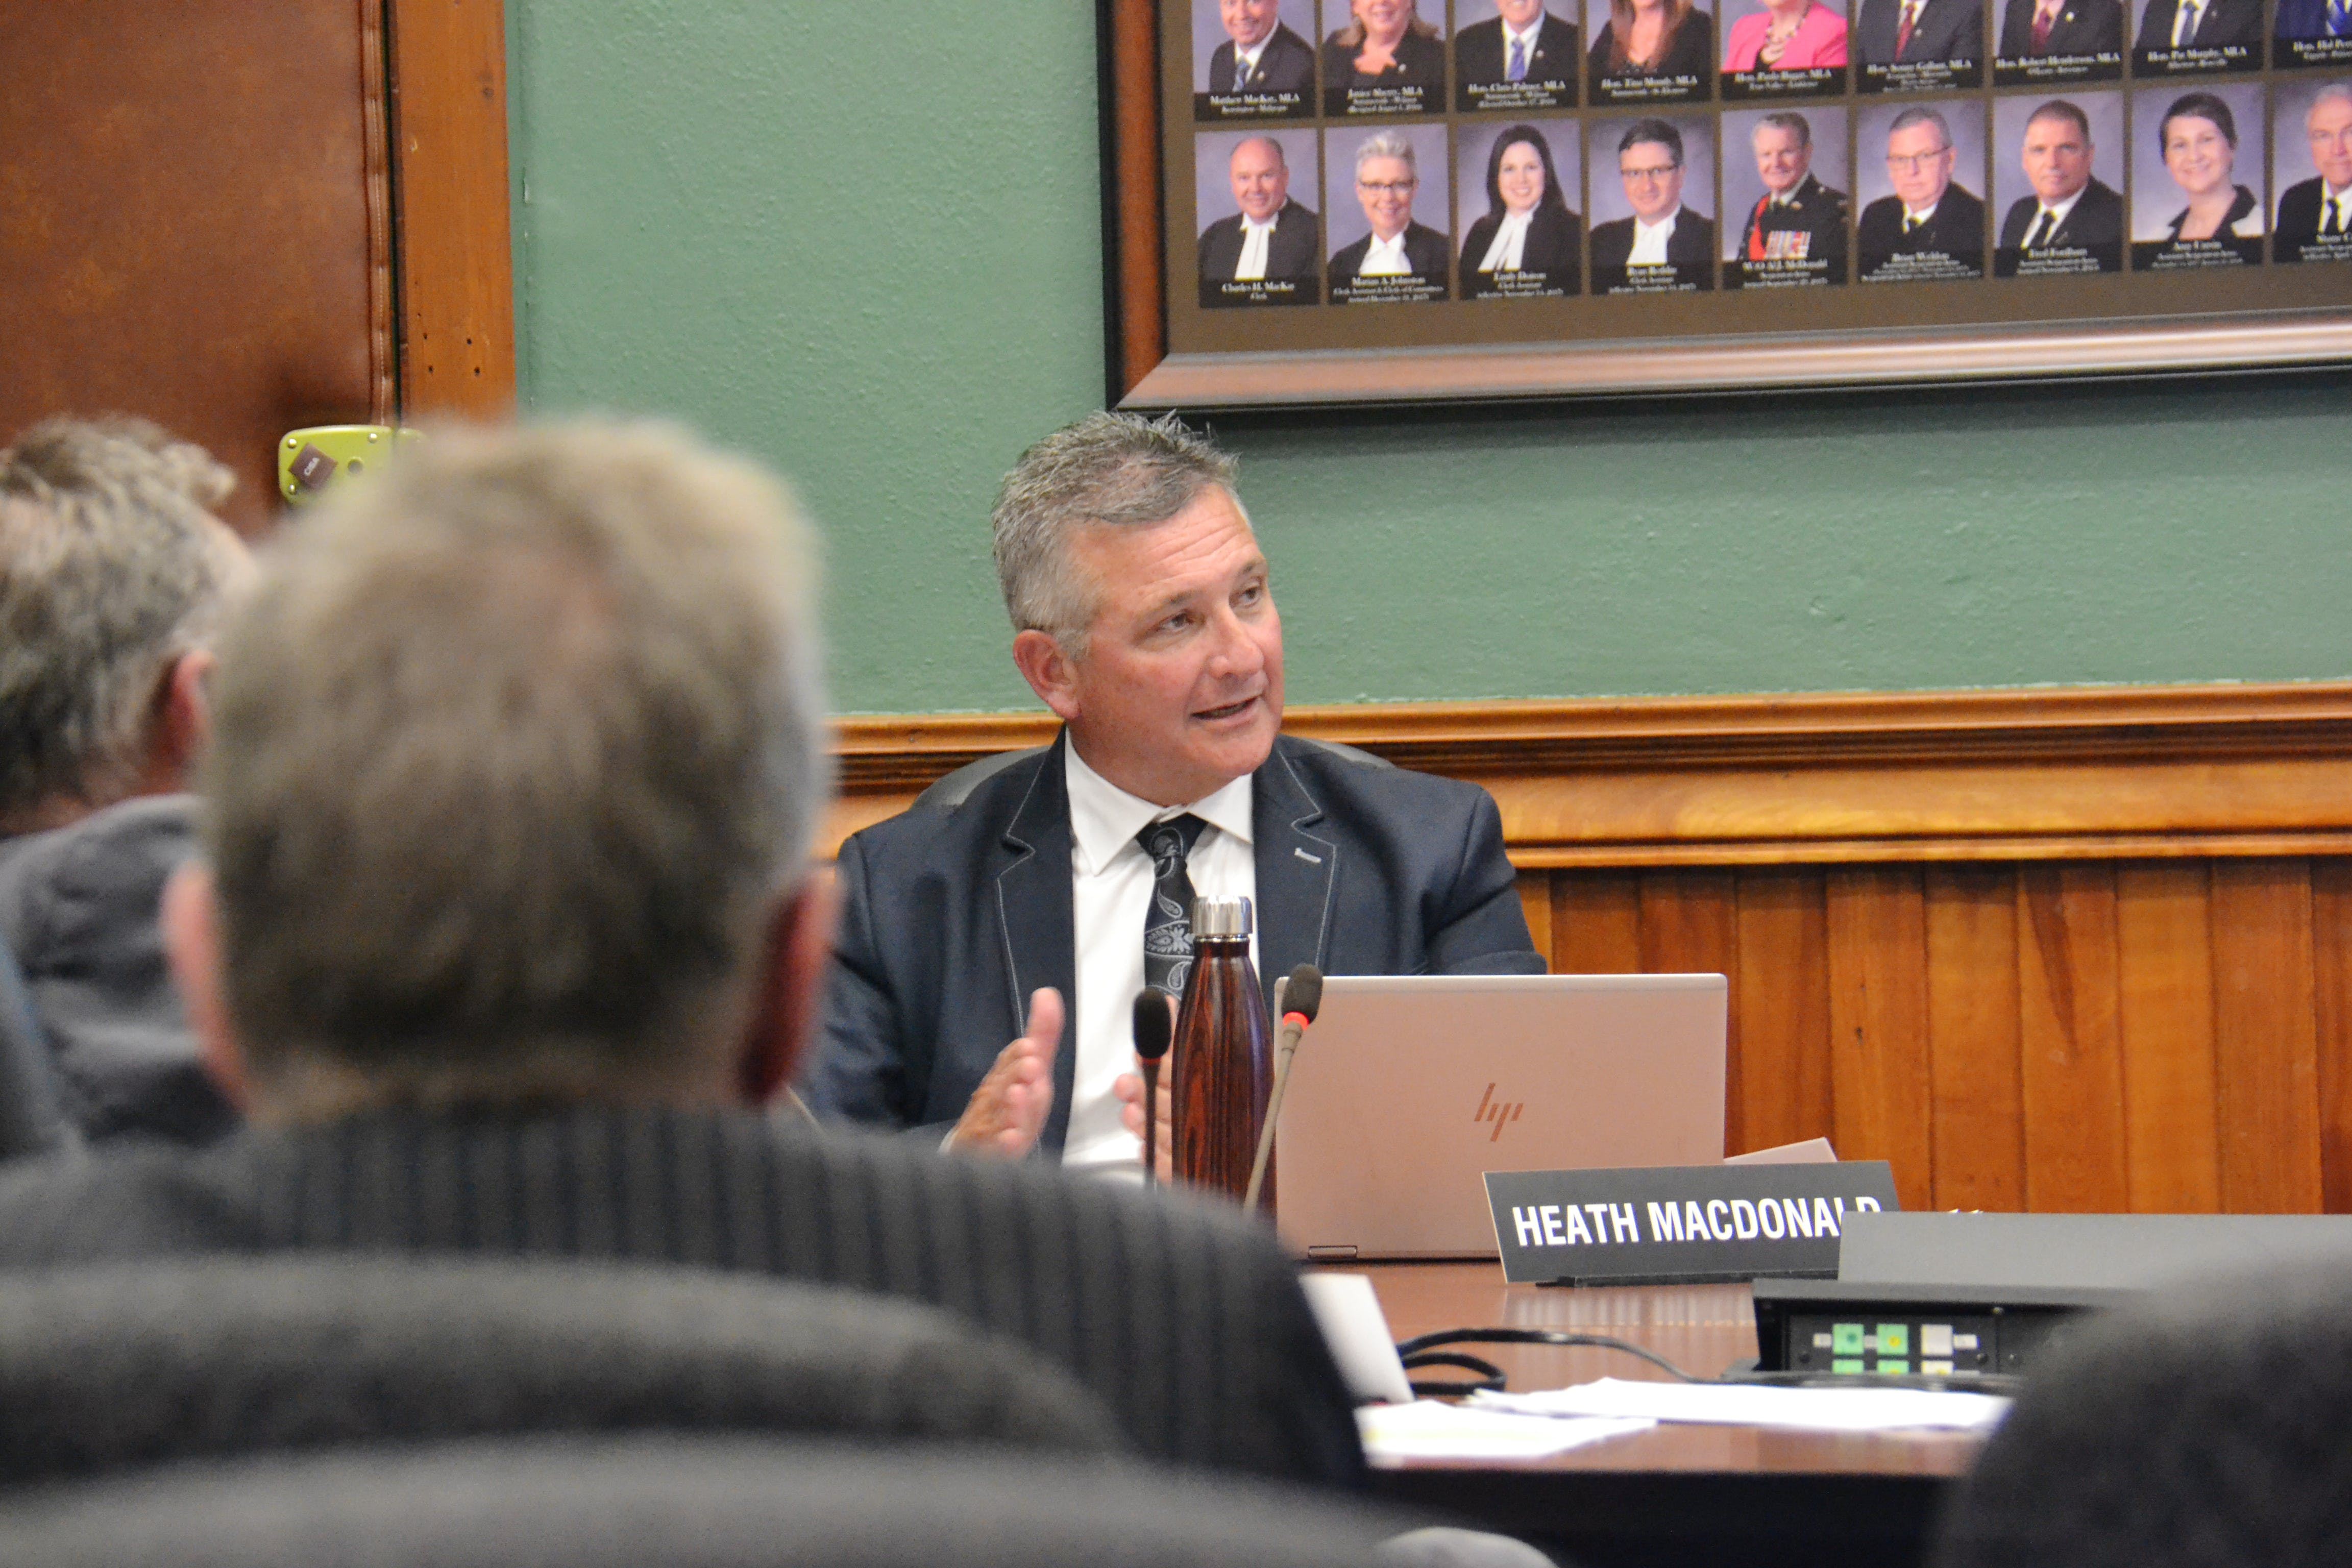 Liberal education critic Heath MacDonald, shown in a standing committee last September, says the province needs more data on how inequity has affected learning outcomes in P.E.I.